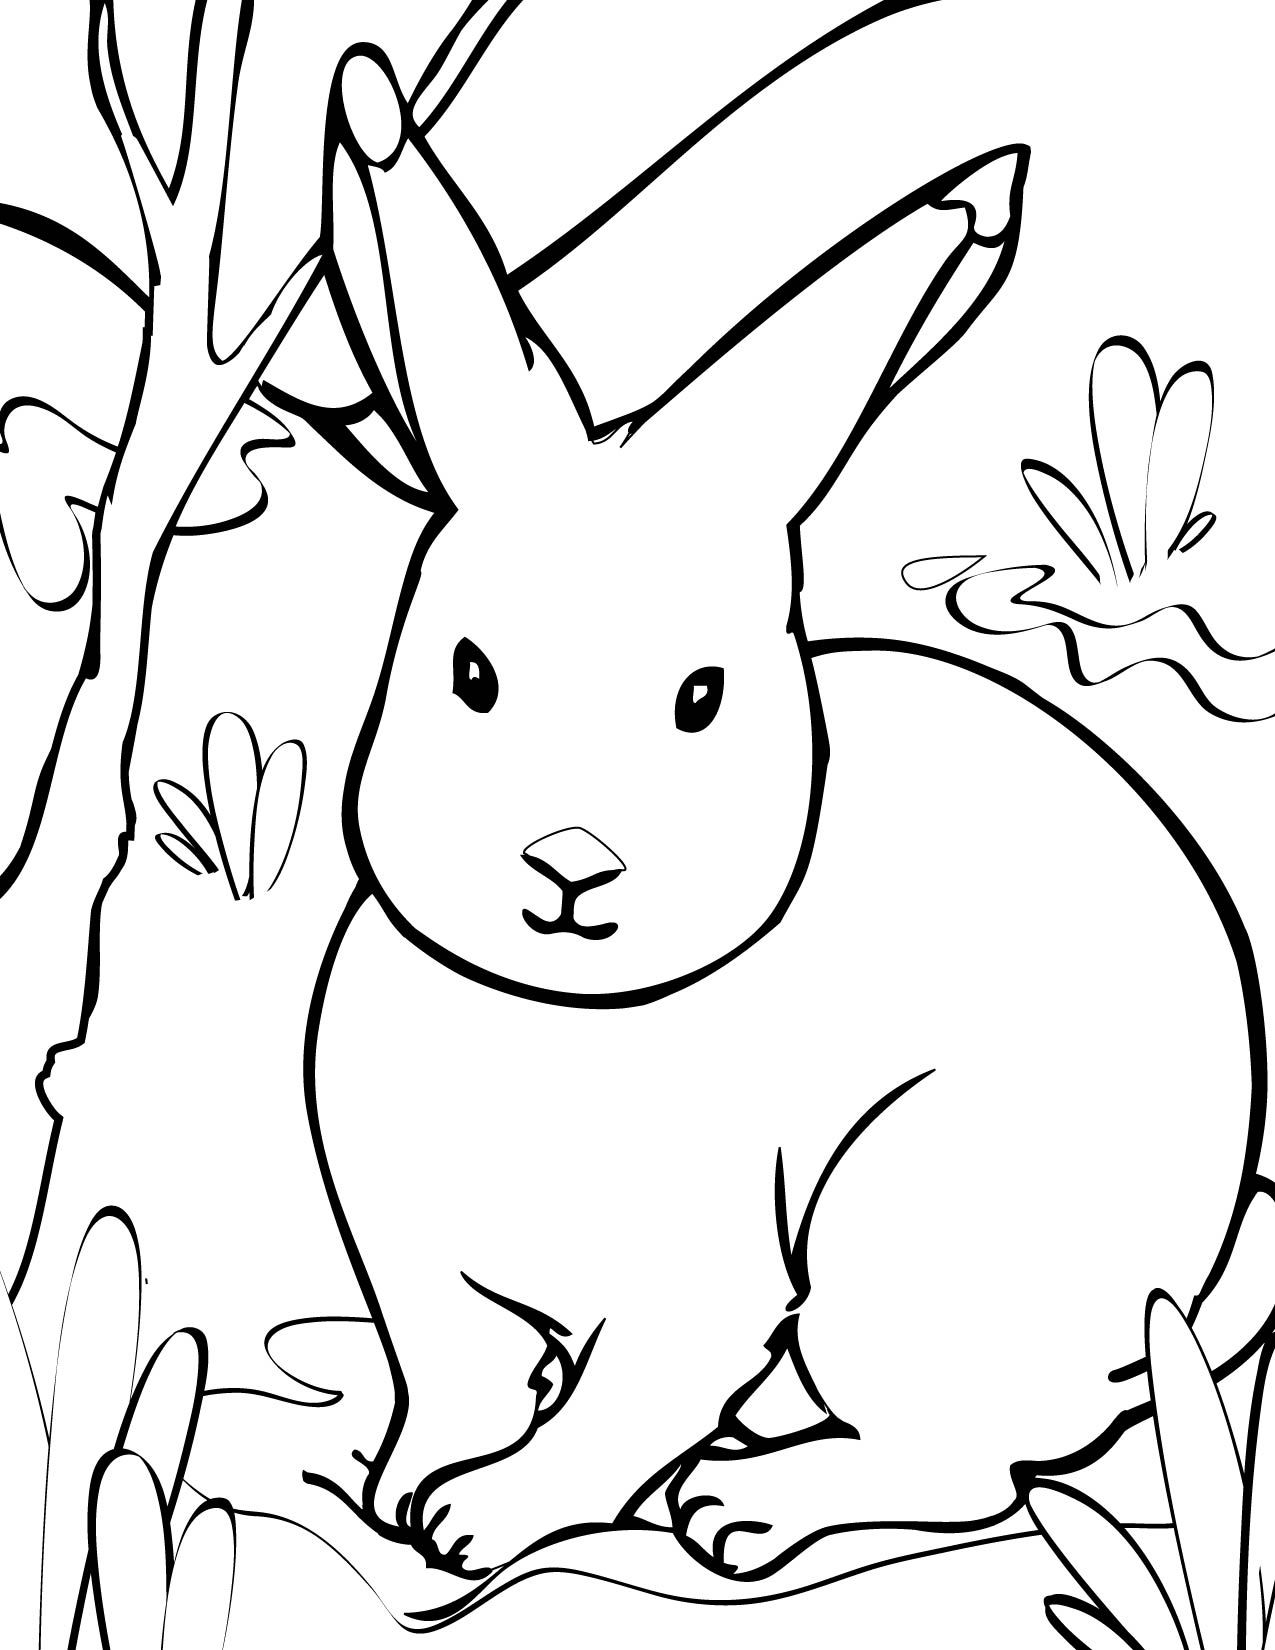 animal coloring pages print this page arctic animals coloring pages coloring pages - Baby Arctic Animals Coloring Pages